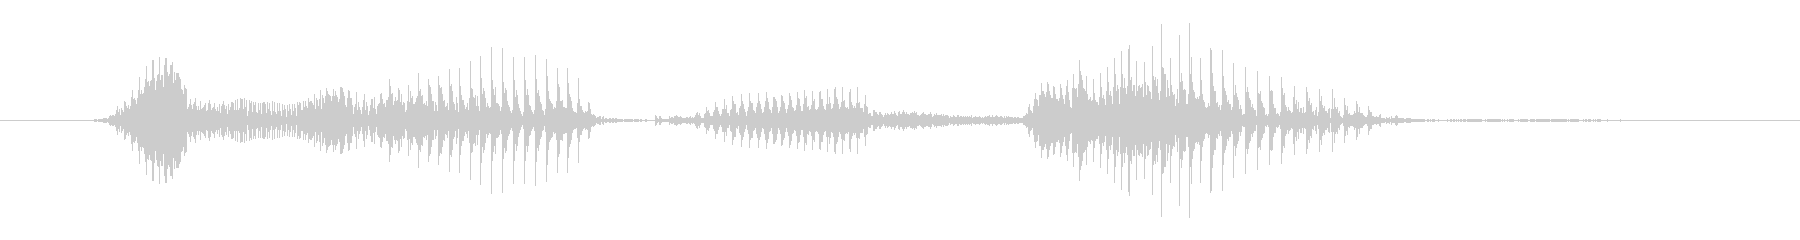 do it yourself's unreproduced waveform